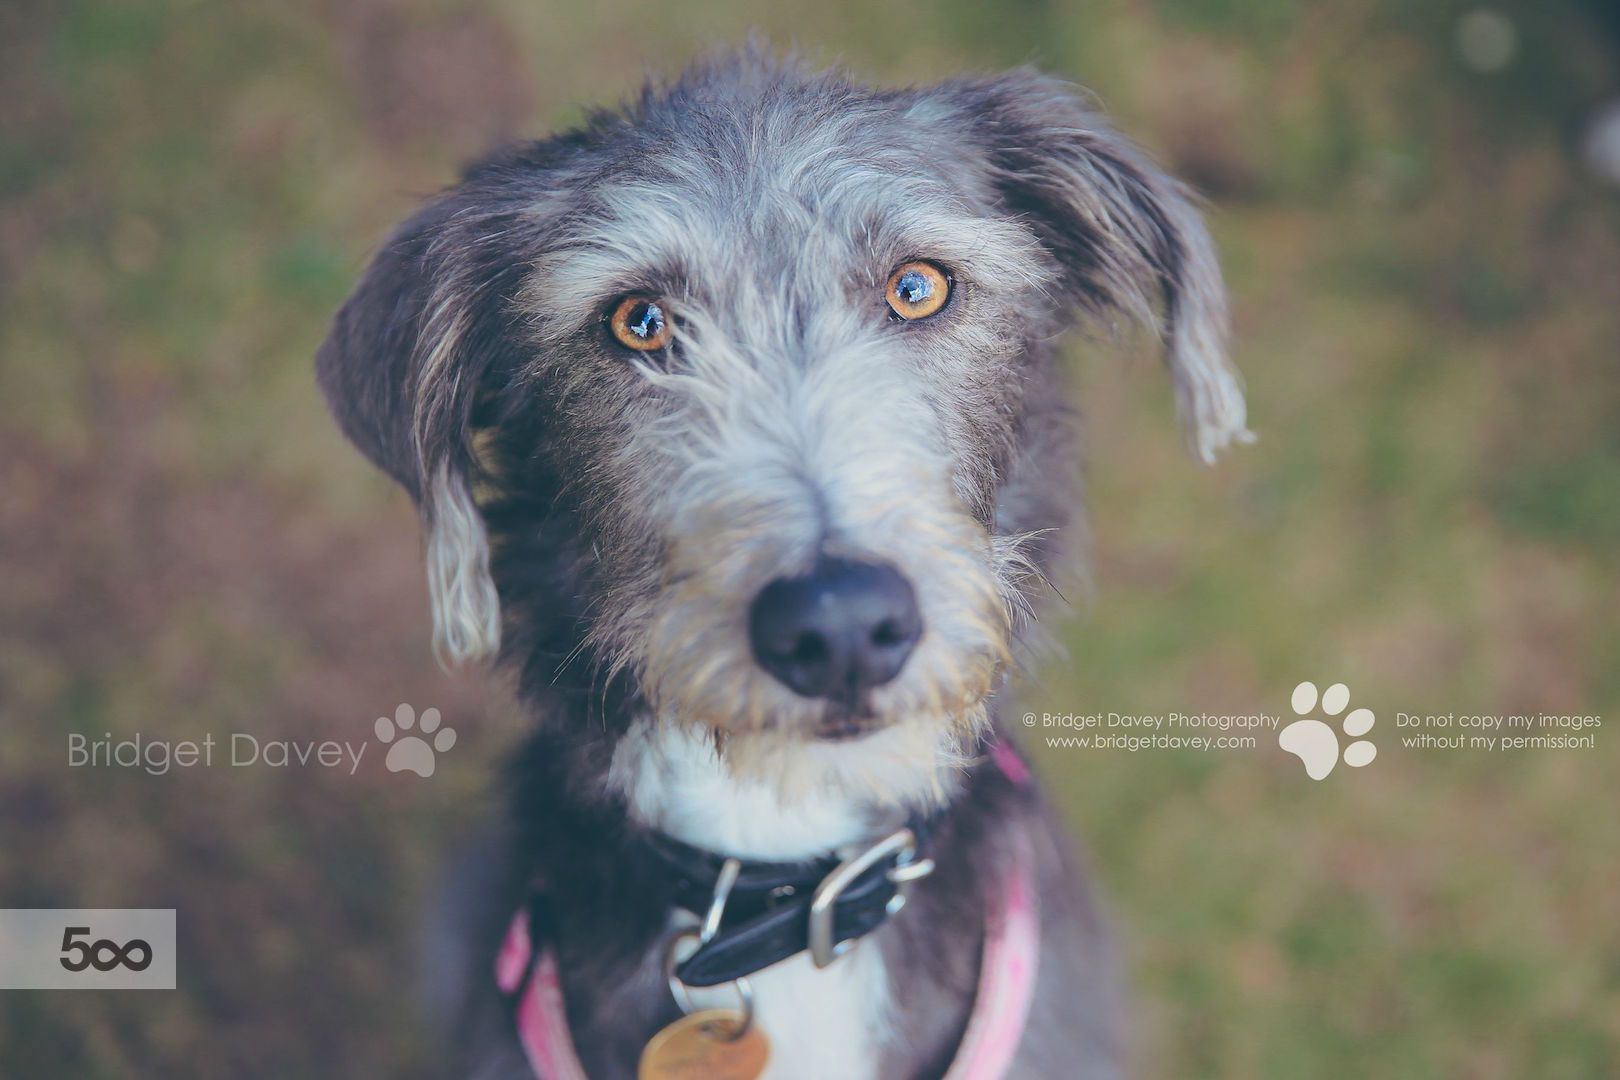 The Dogs Dog Photography Bedfordshire By Bridget Davey On 500px